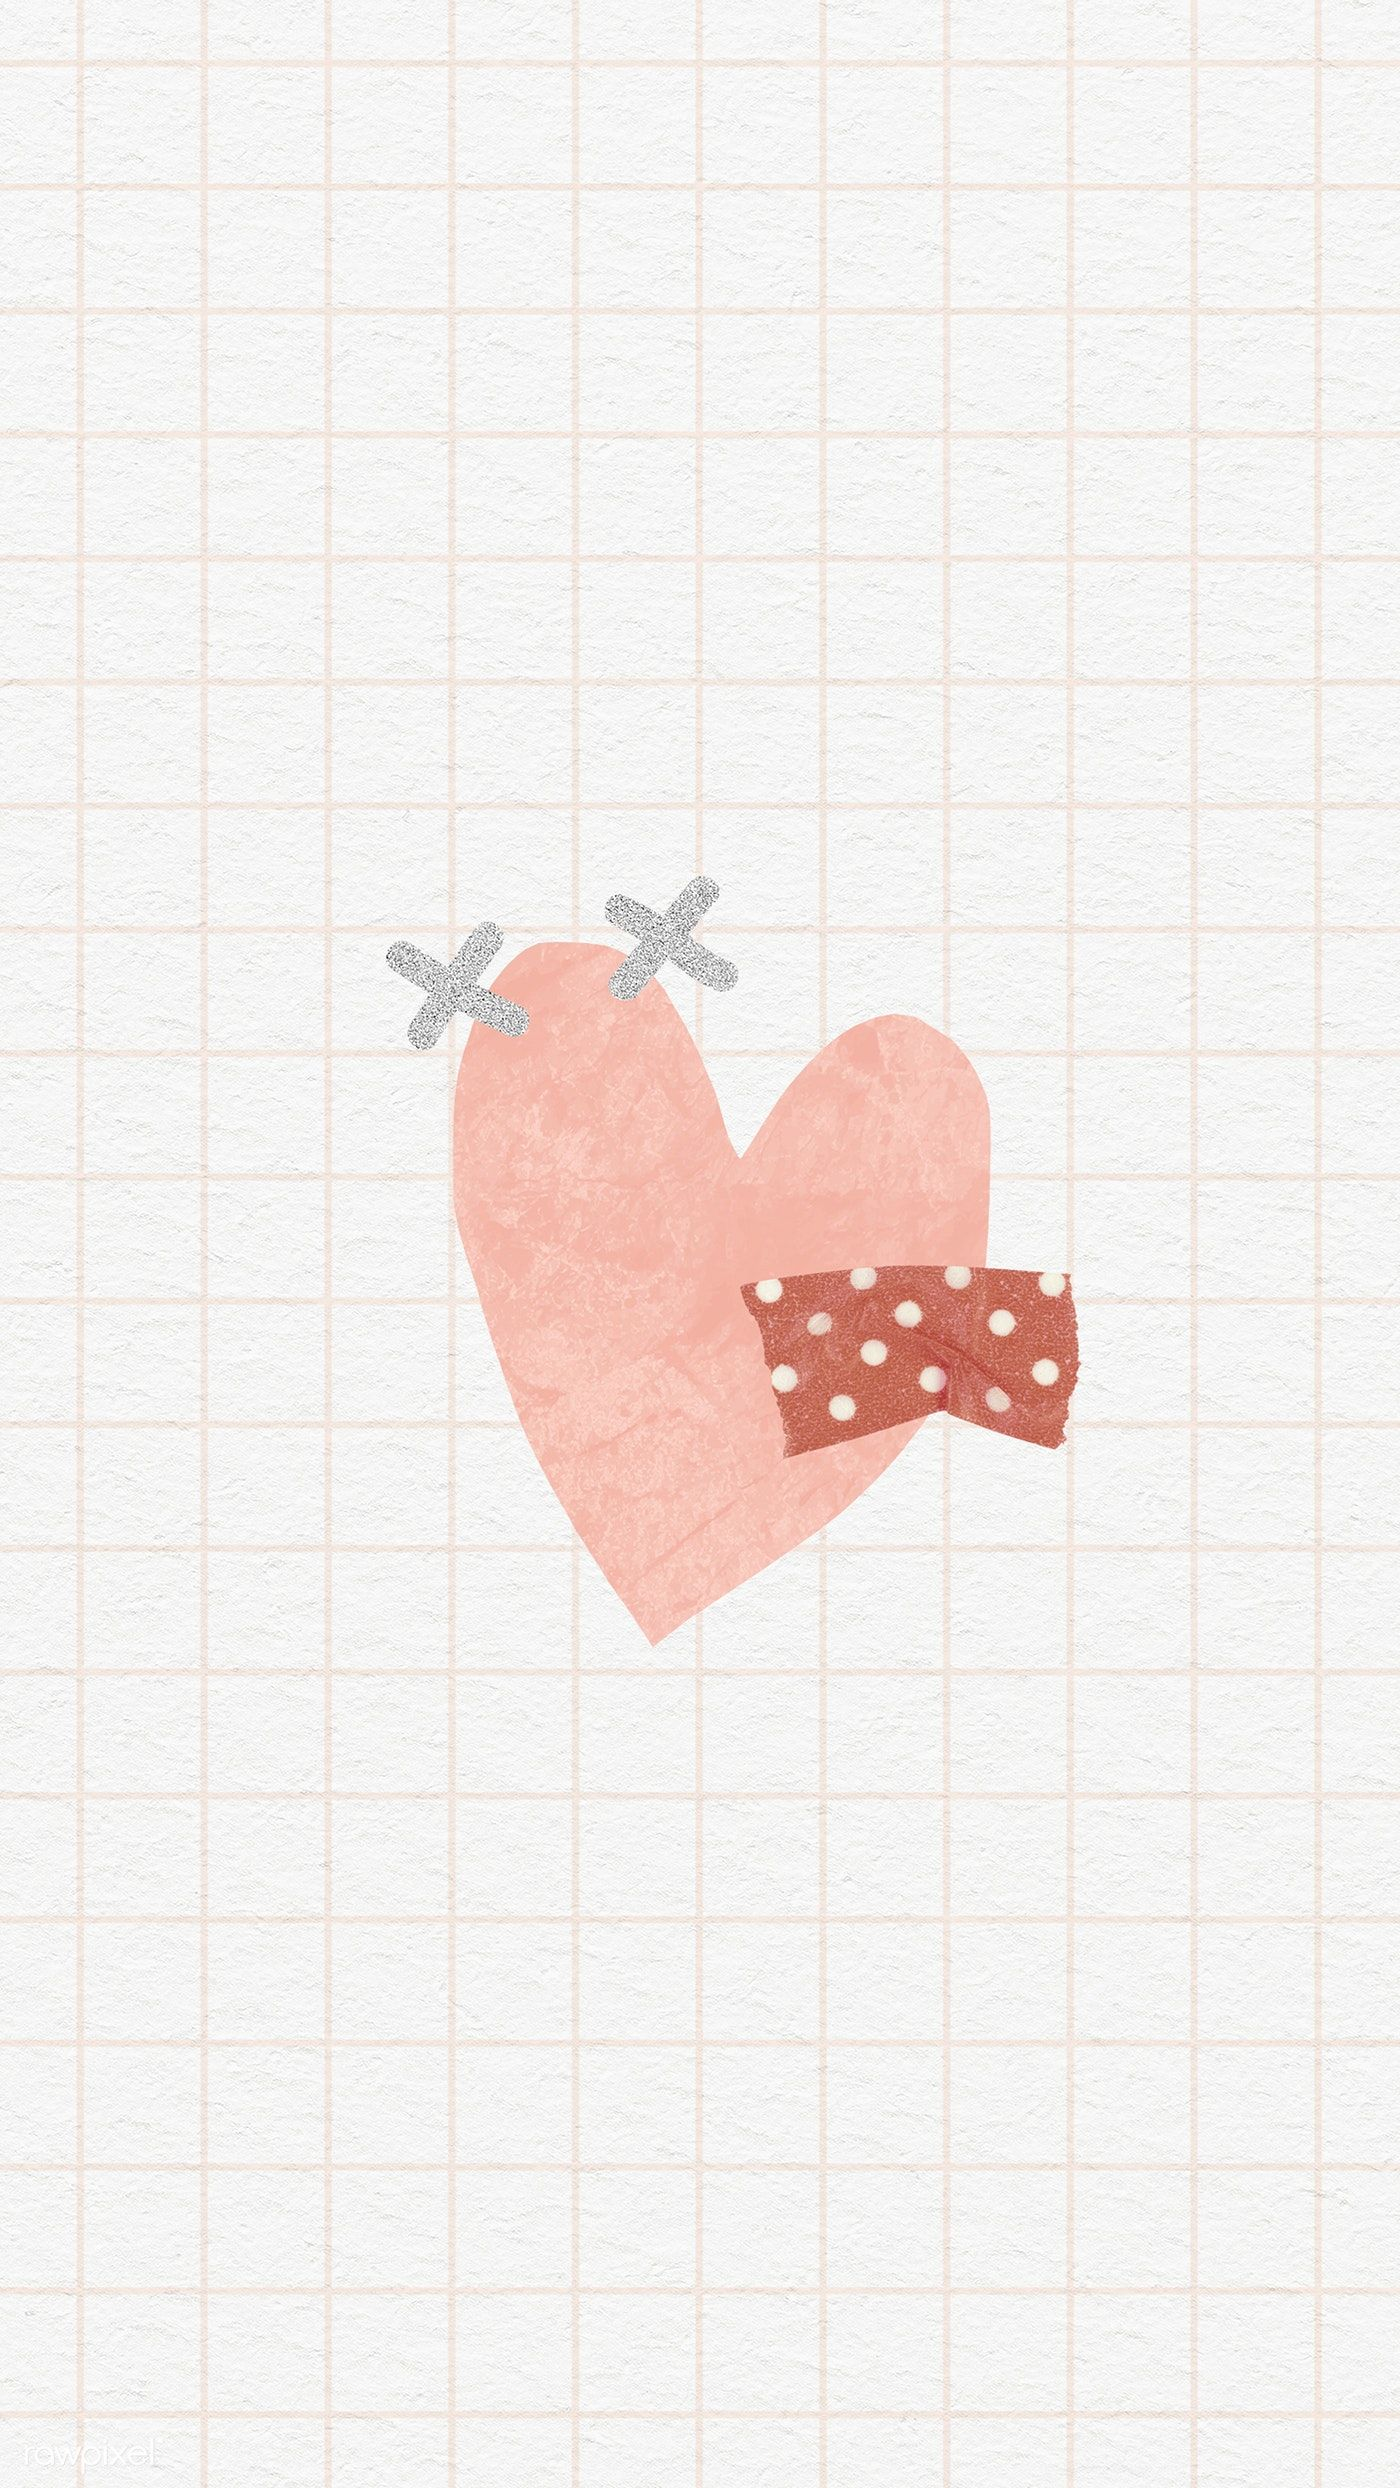 Download premium illustration of Cute doodle heart on grid